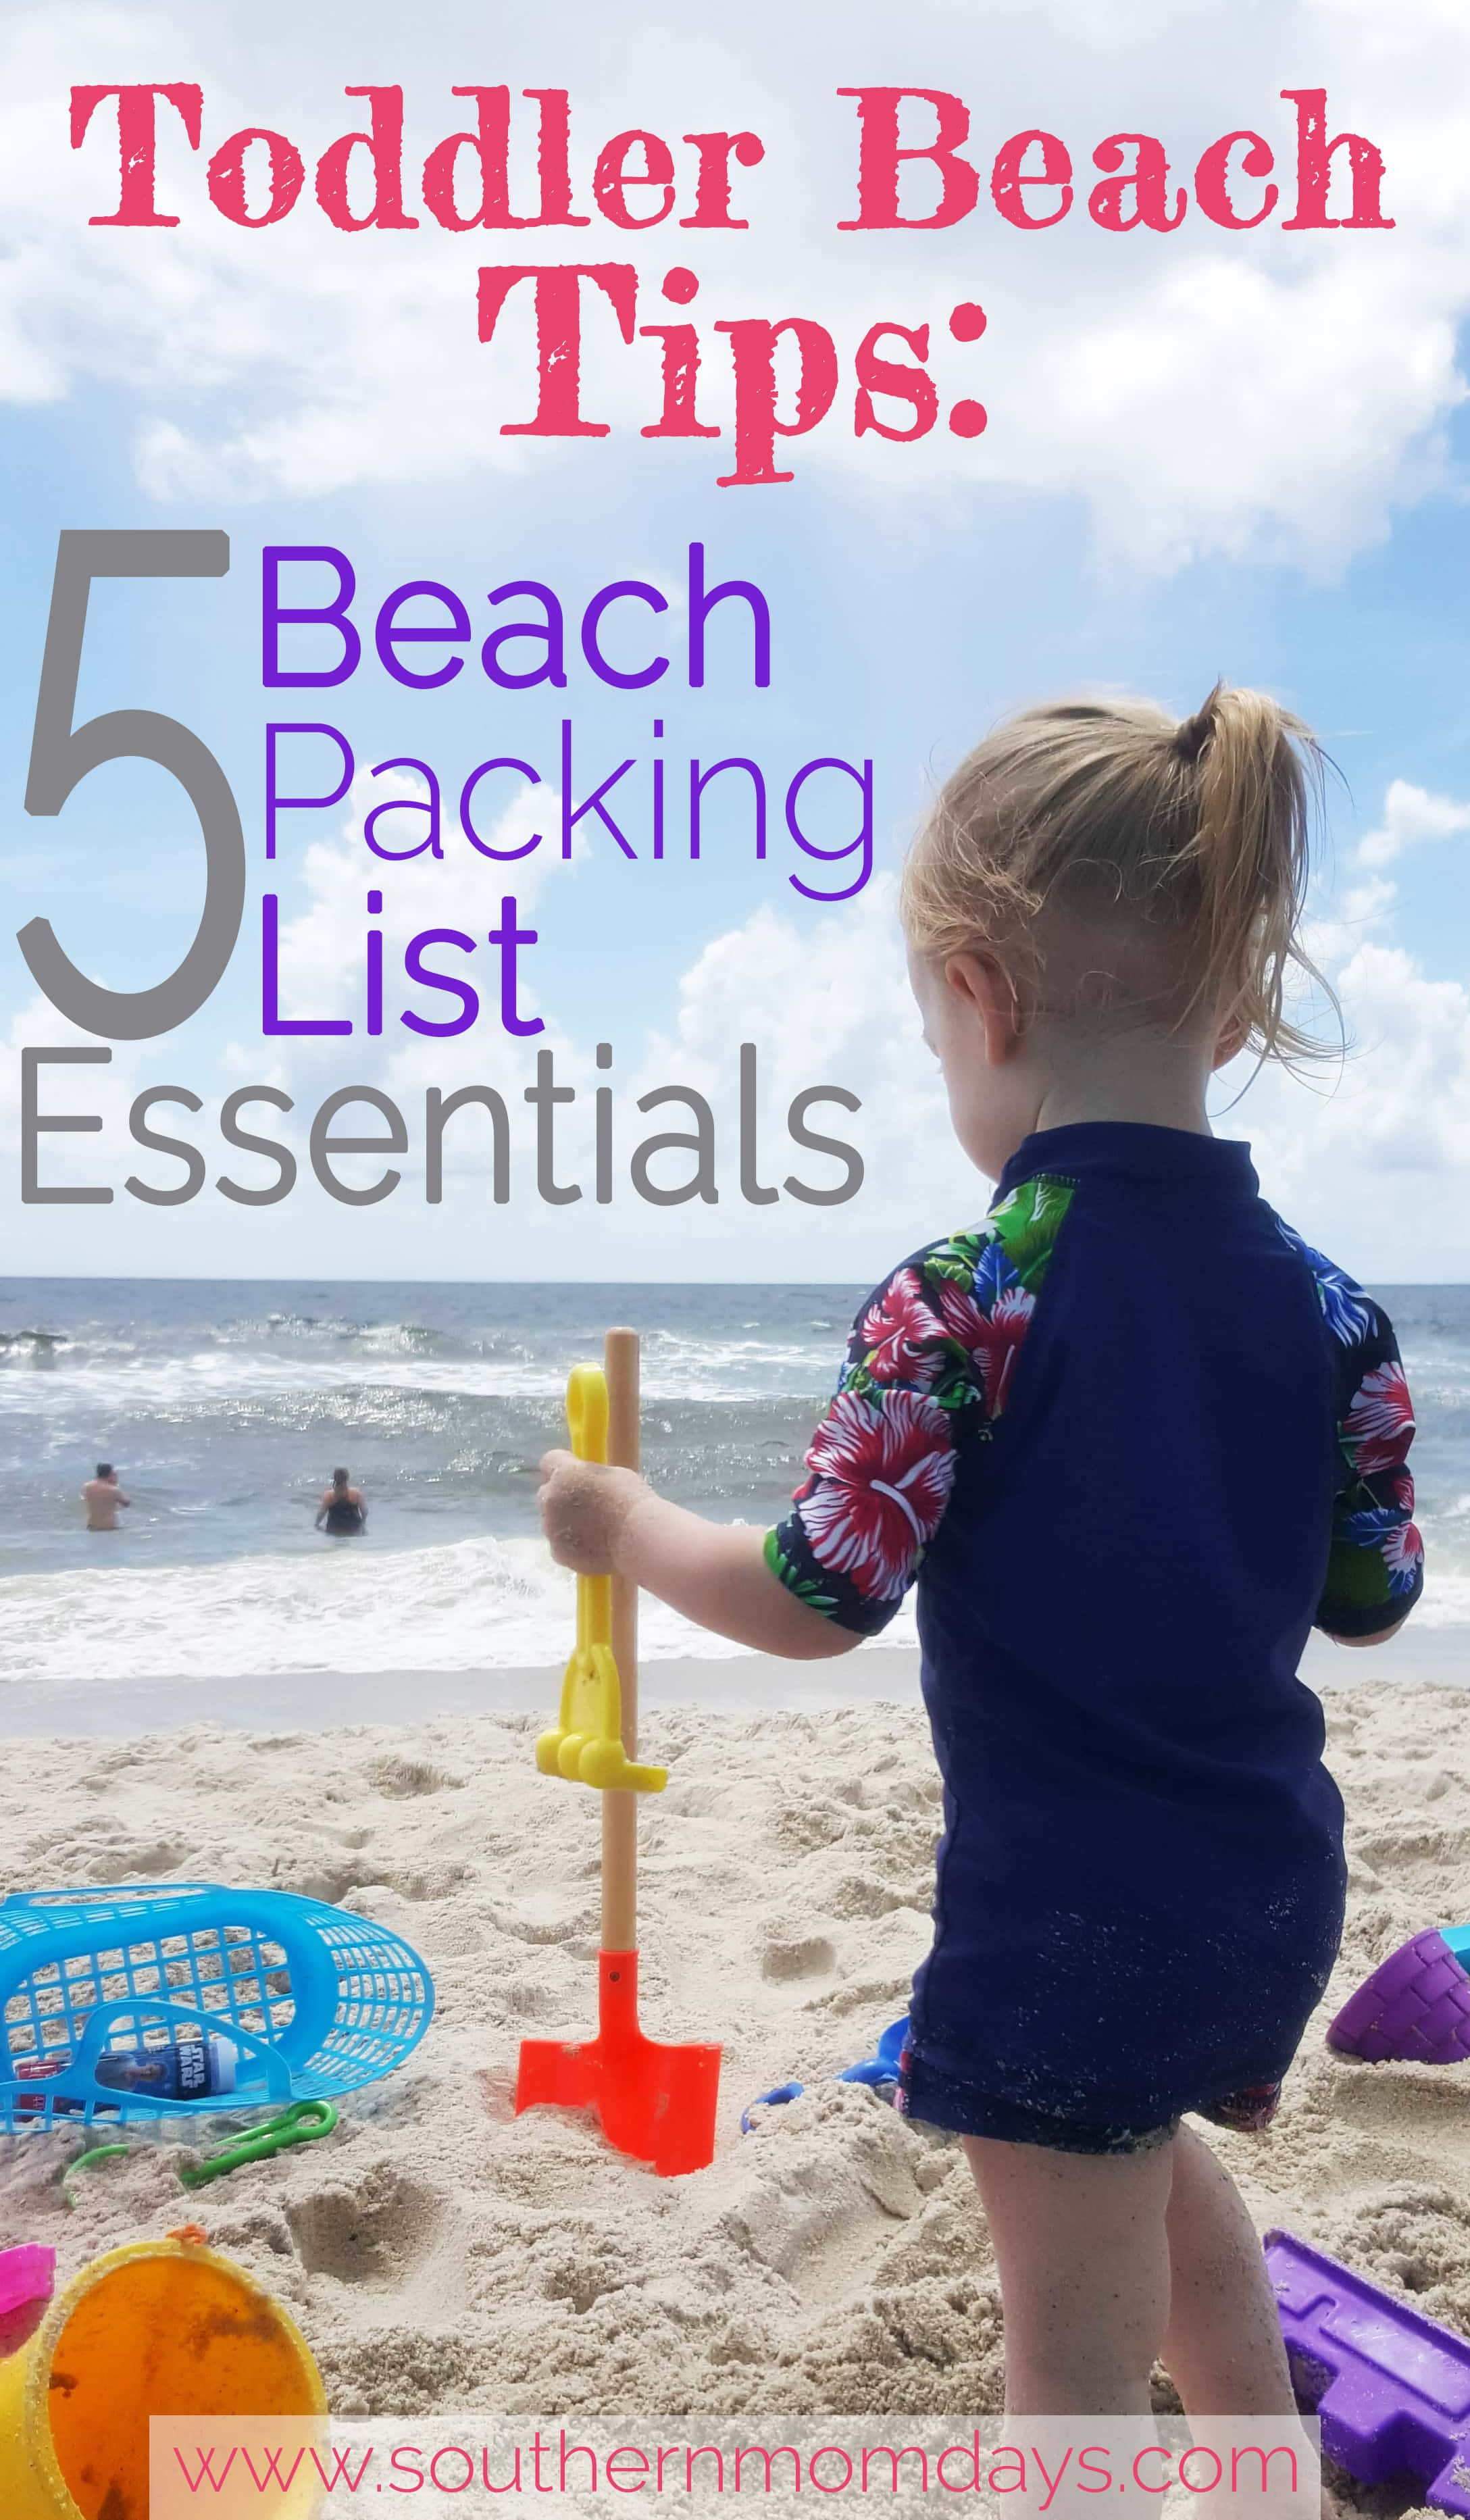 Toddler Beach Tips: 5 Beach Packing List Essentials, With Featured Image Of  Toddler Playing